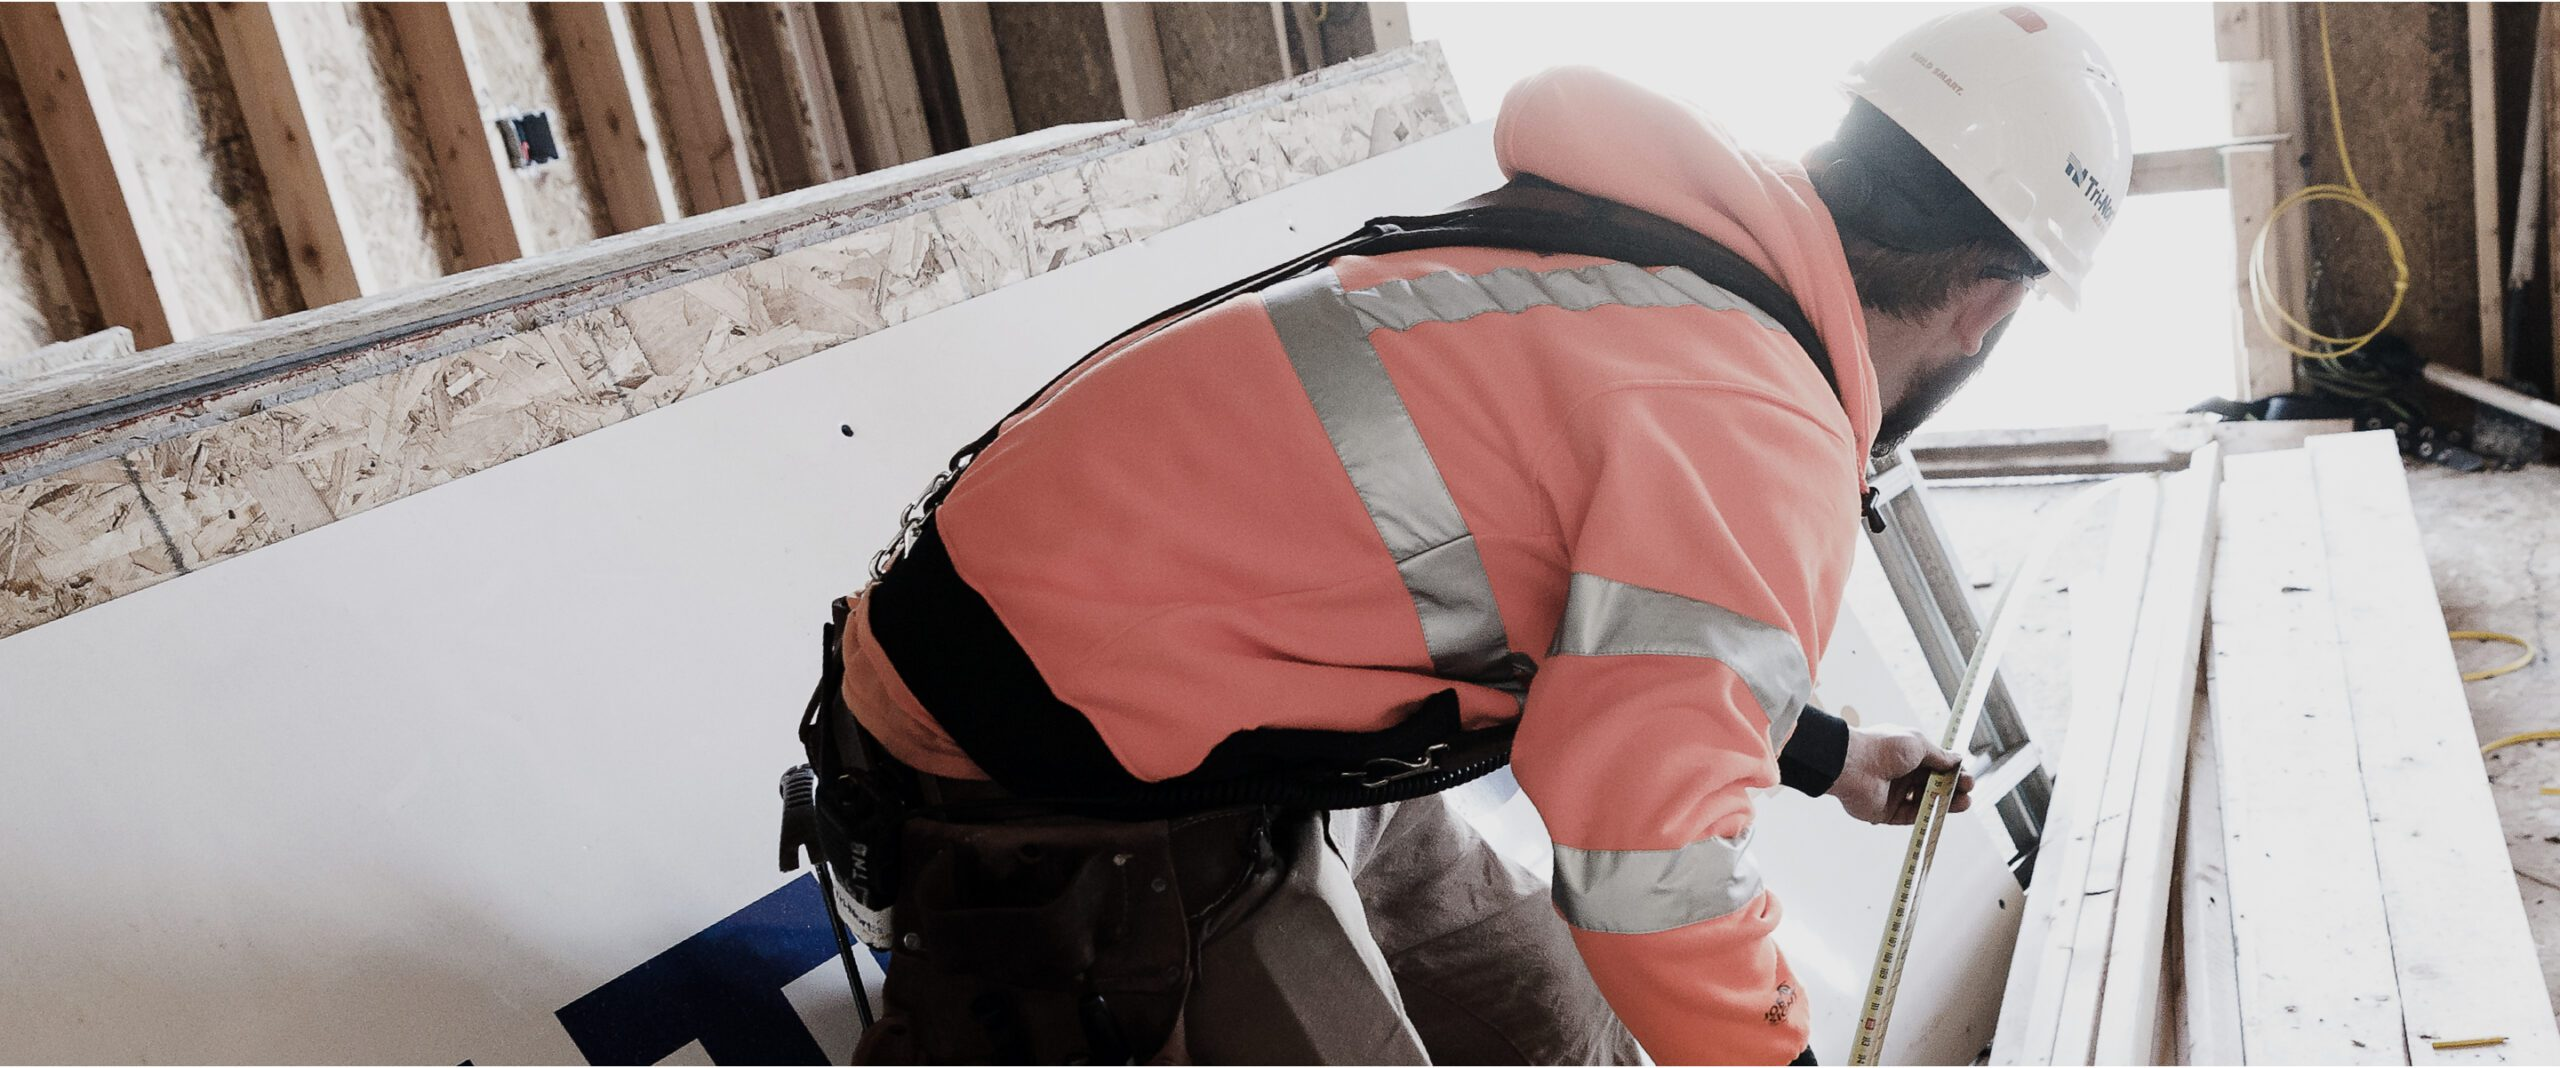 A member of Tri-North's construction crew measures lumber on a job site.